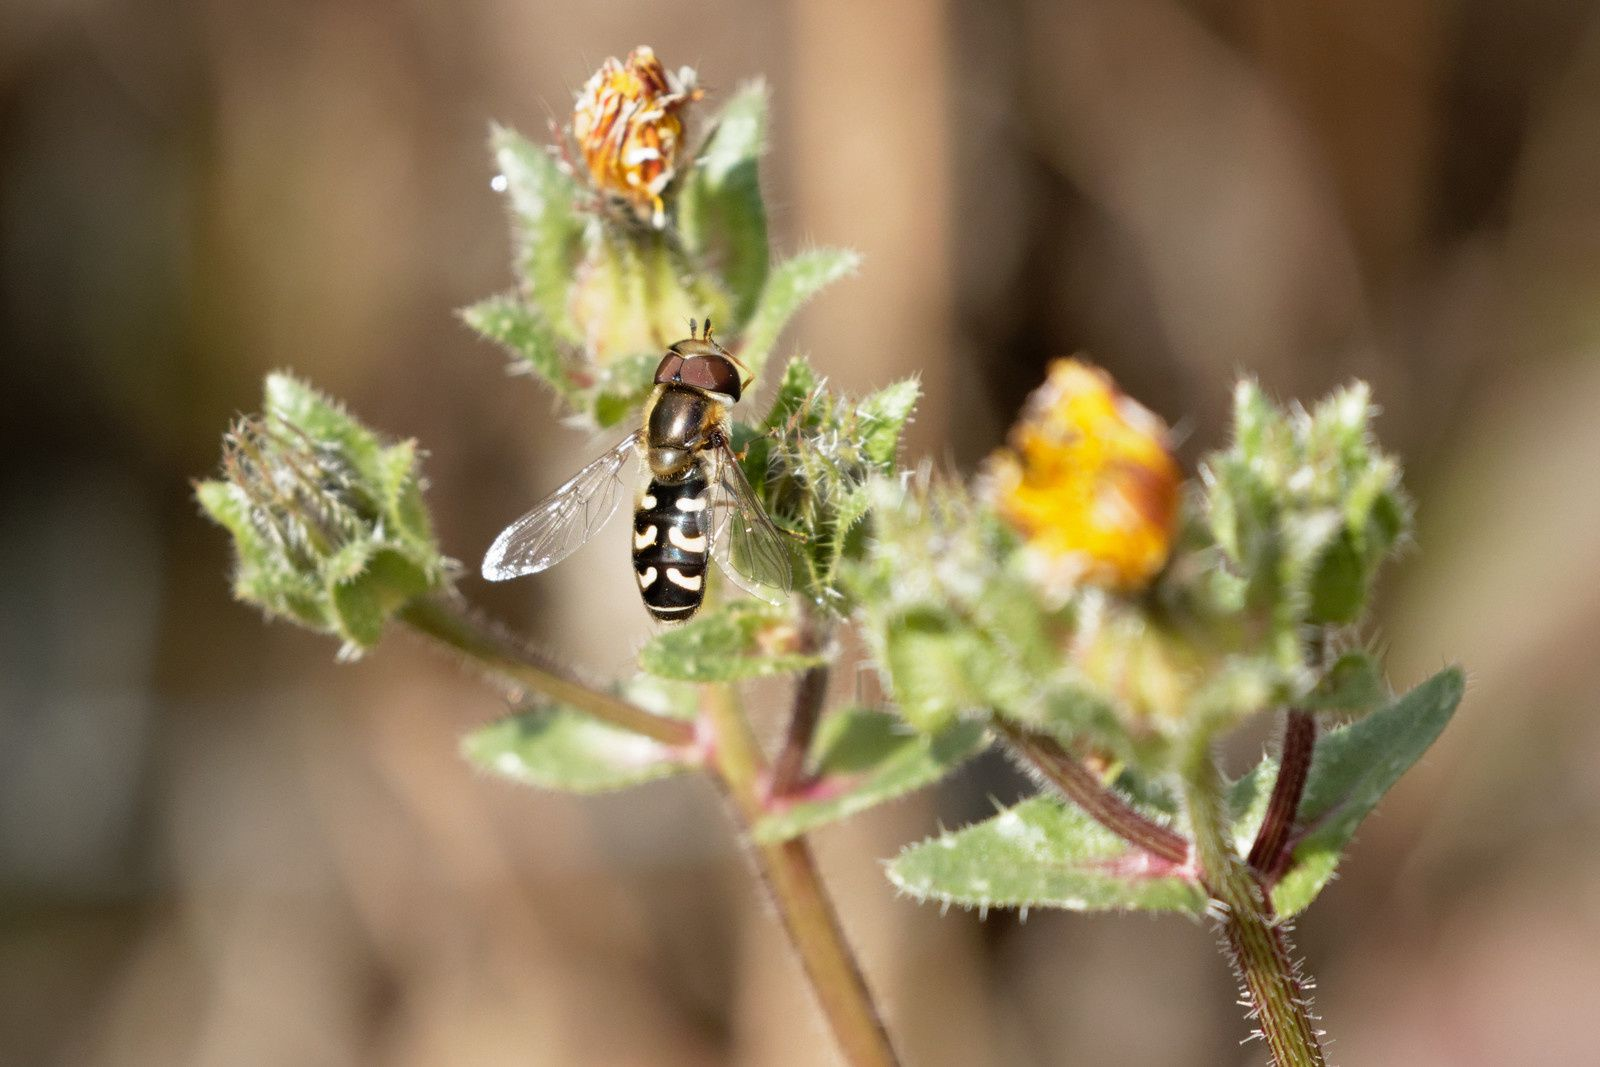 Syrphidae, une possible Scaeva pyrastri